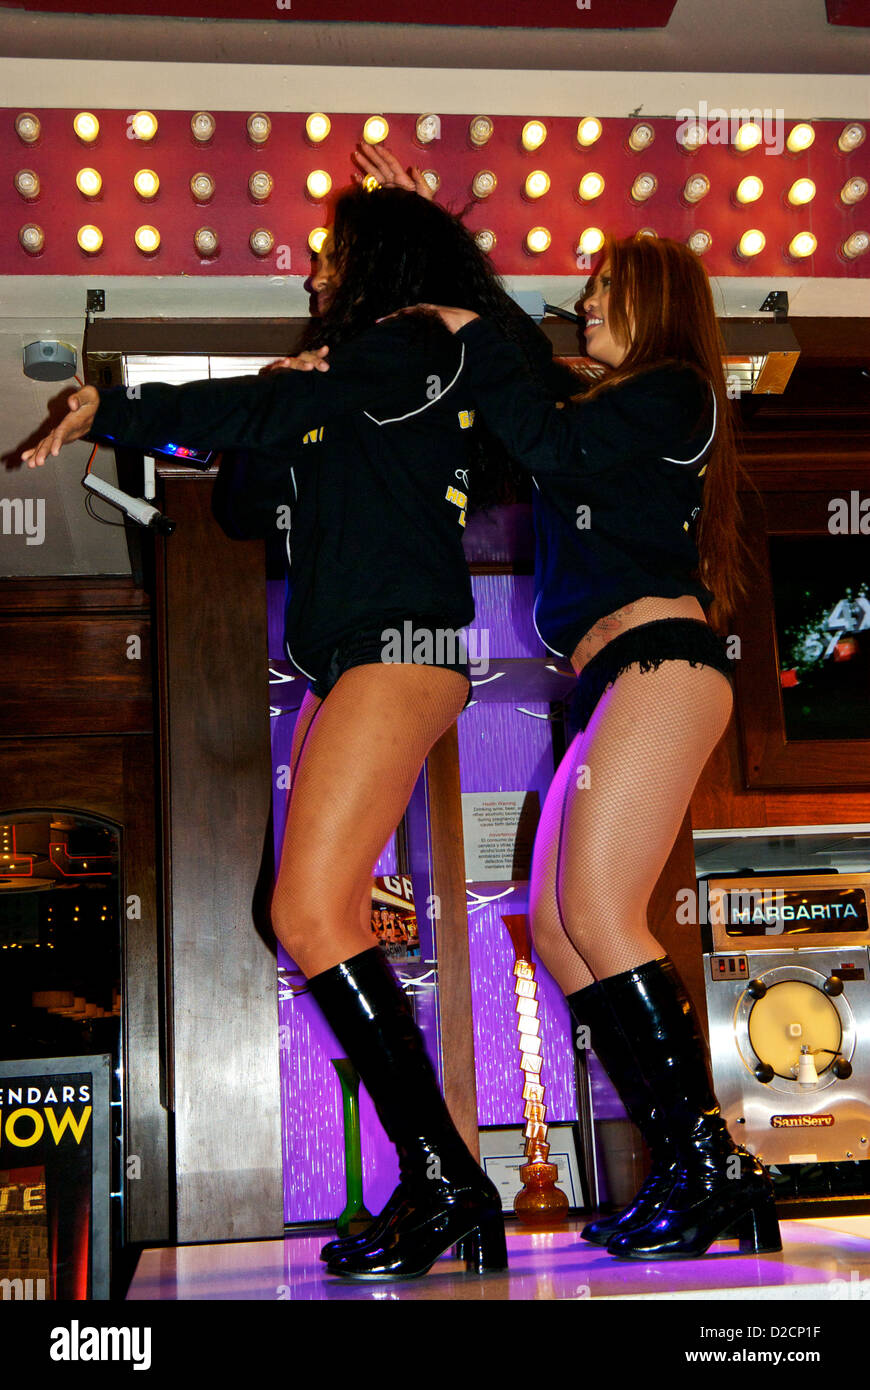 Showgirls dancing Macarena outside Golden Gate Hotel bar Fremont Street Experience old Las Vegas downtown - Stock Image